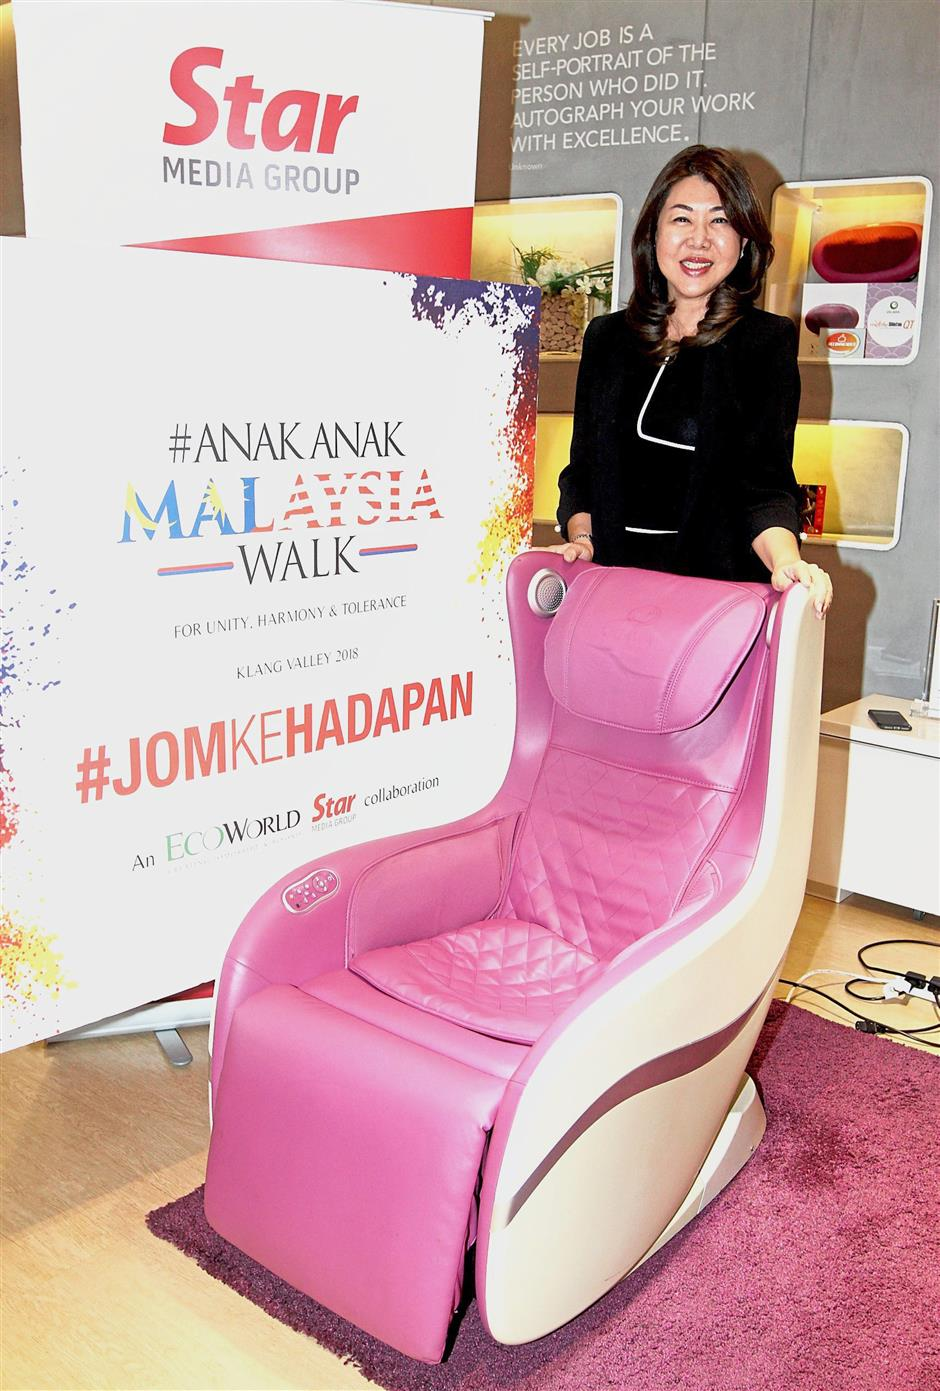 Lim showing the Ogawa MYsofa massage chair which will be given away at the AnakAnakMalaysia Walk.